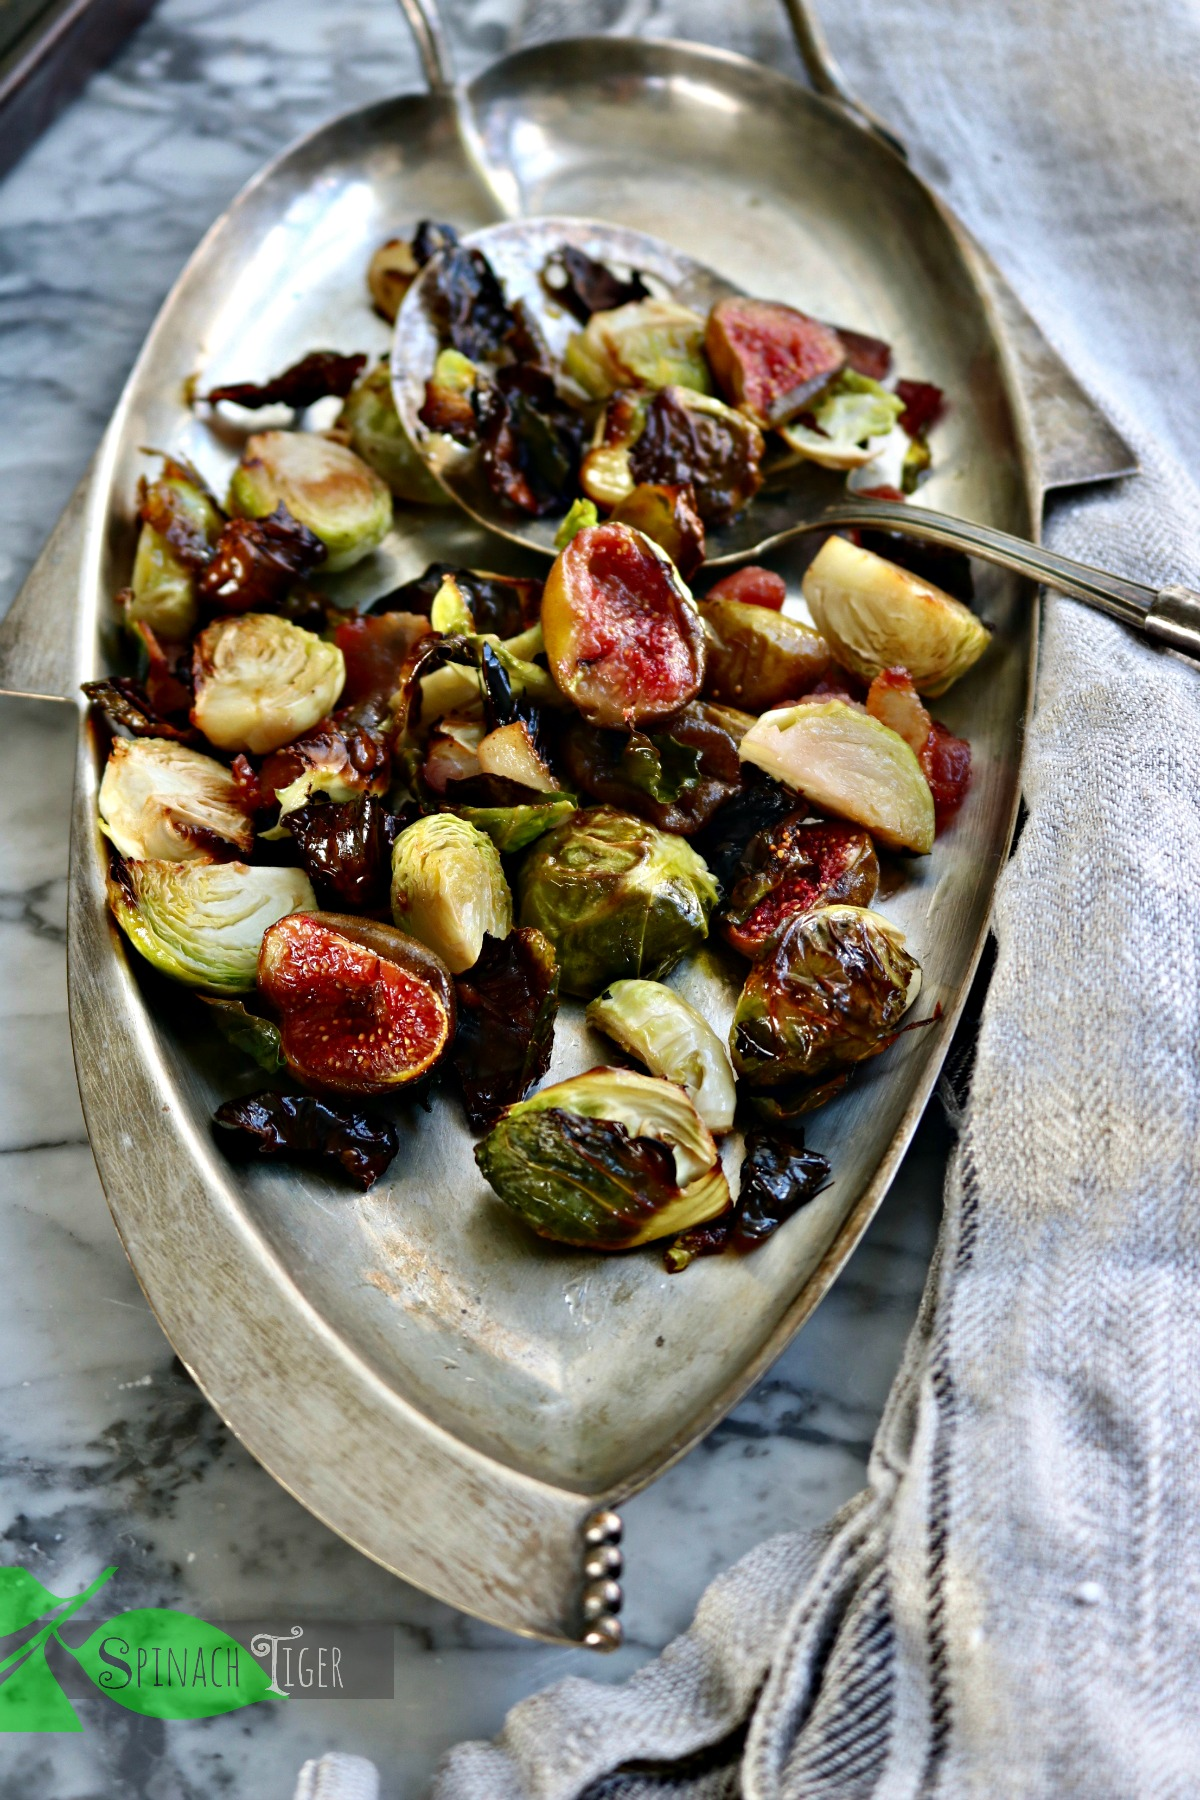 Best Brussels Sprouts Bacon Recipe from Spinach Tiger